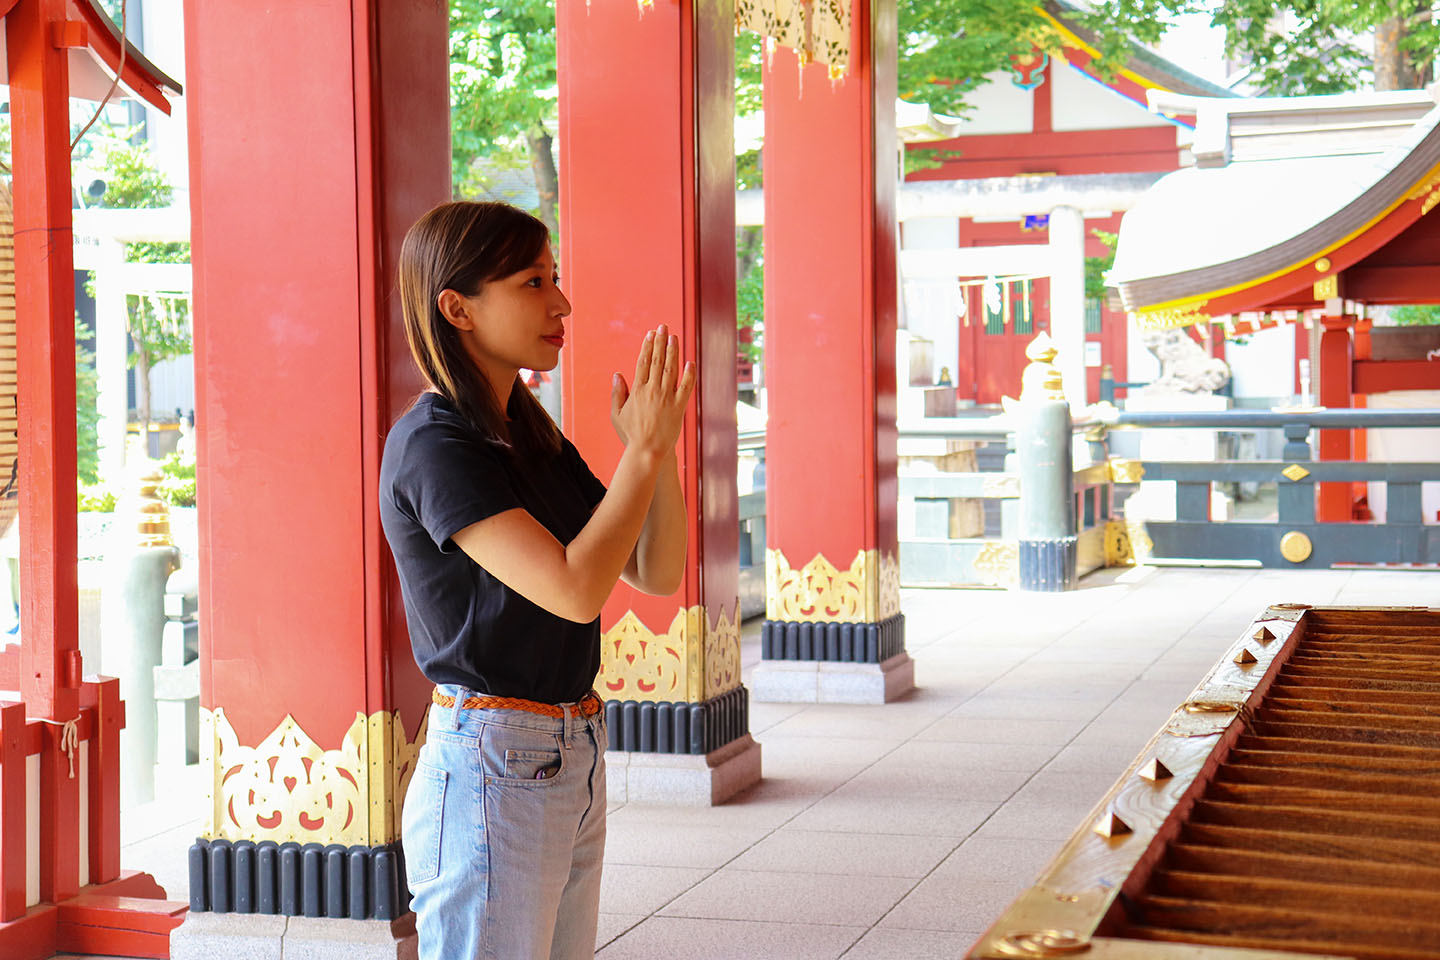 How to visit the shrine properly: Manners and Customs